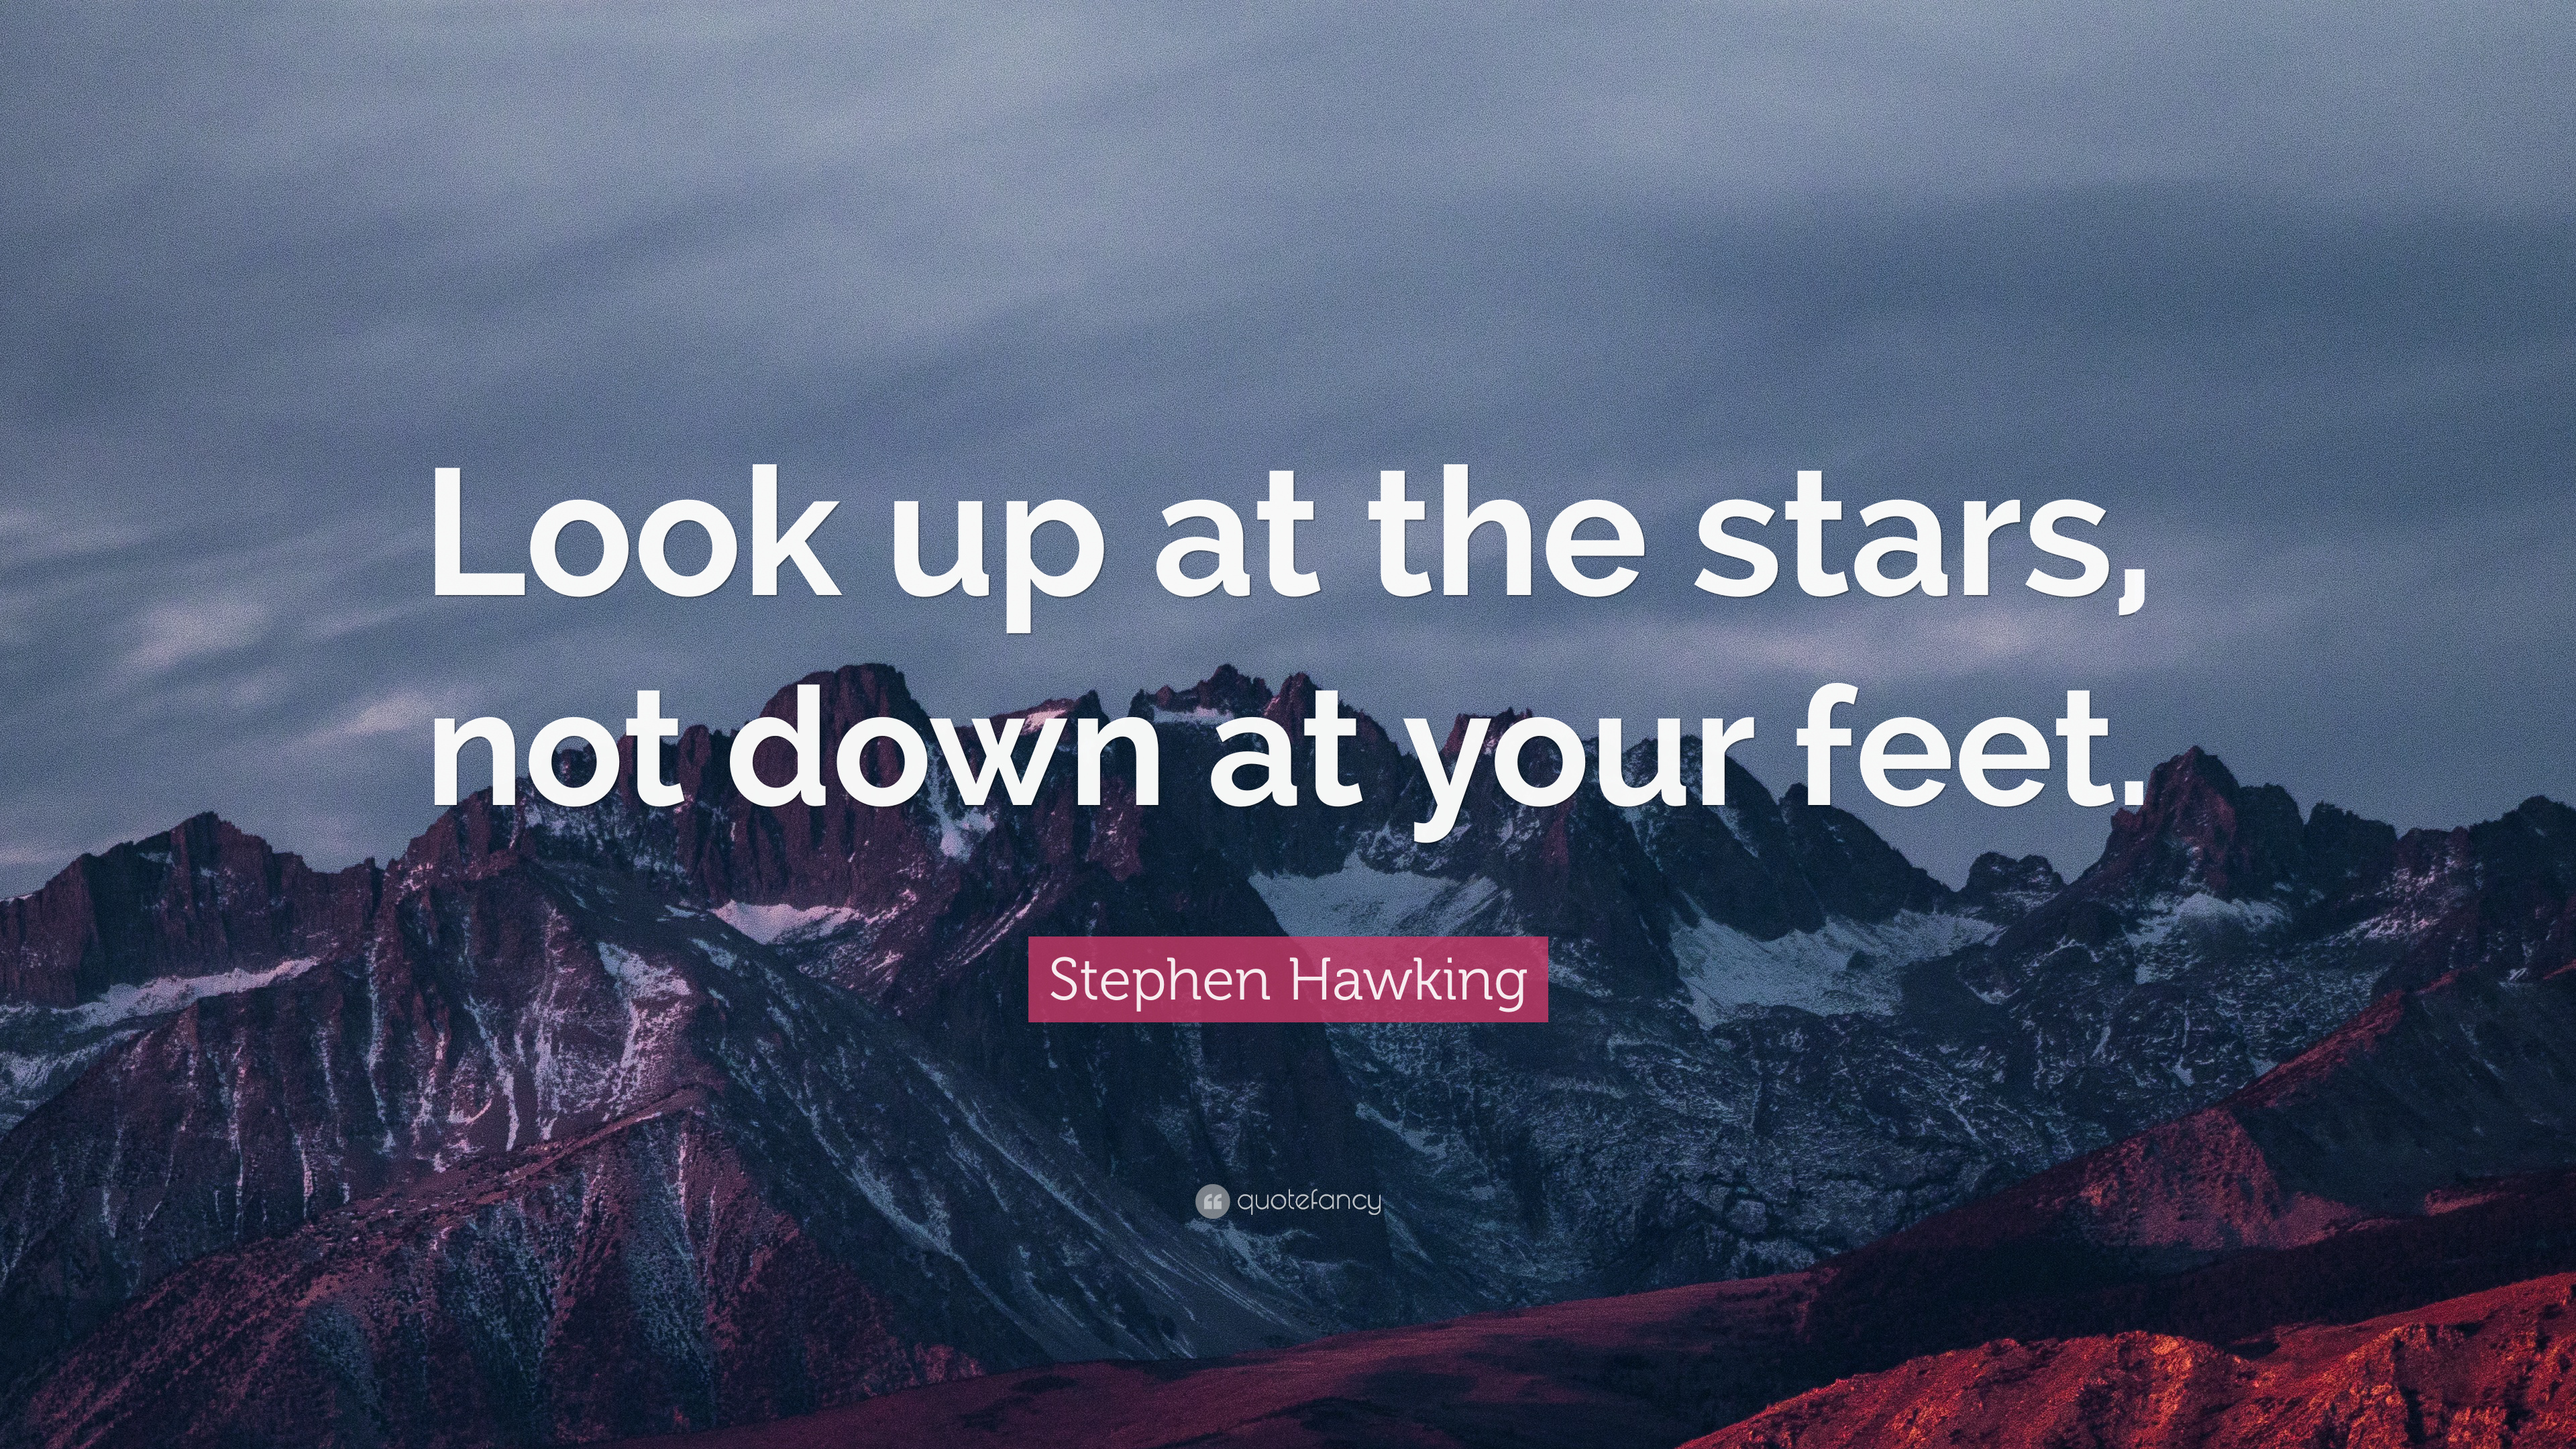 Stephen Hawking Quote Look Up At The Stars Not Down At Your Feet